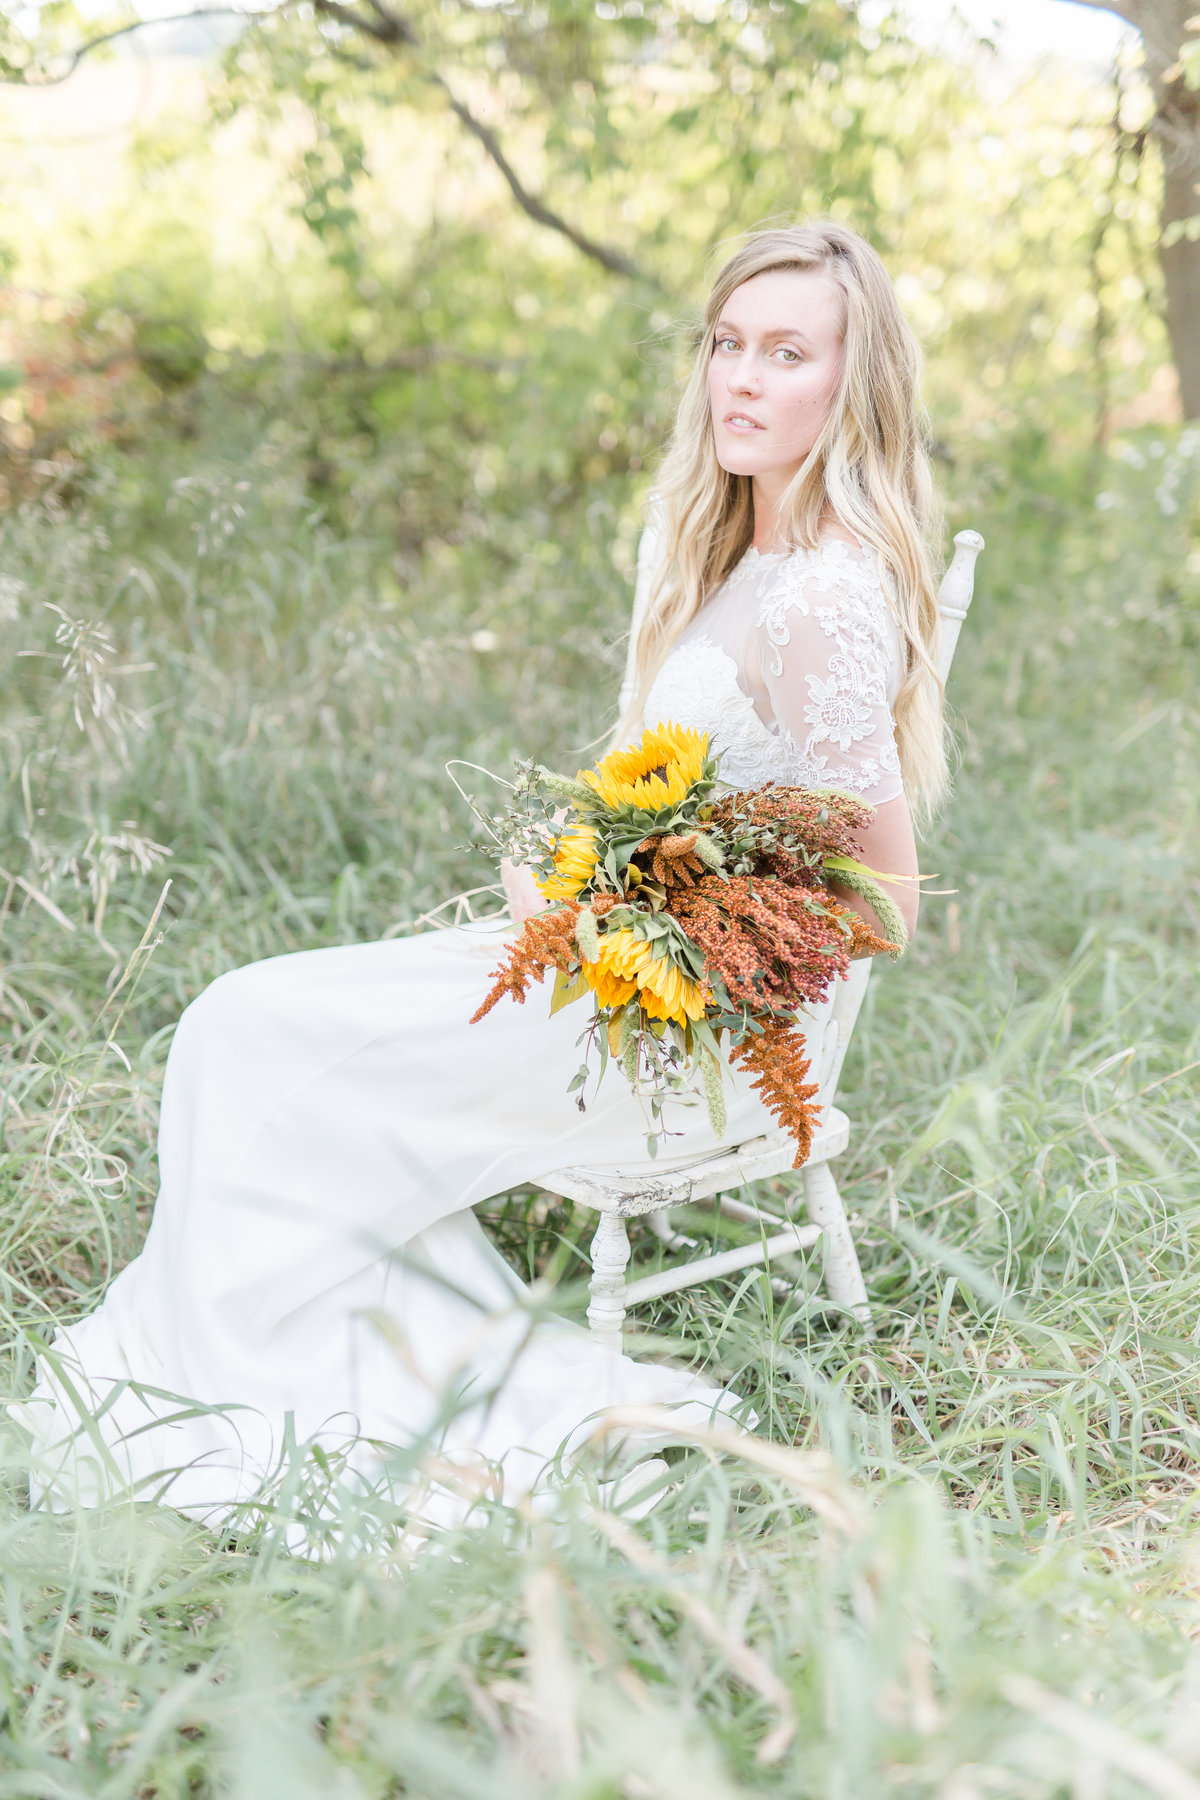 Kailey - Styled Shoot - New Edits-110